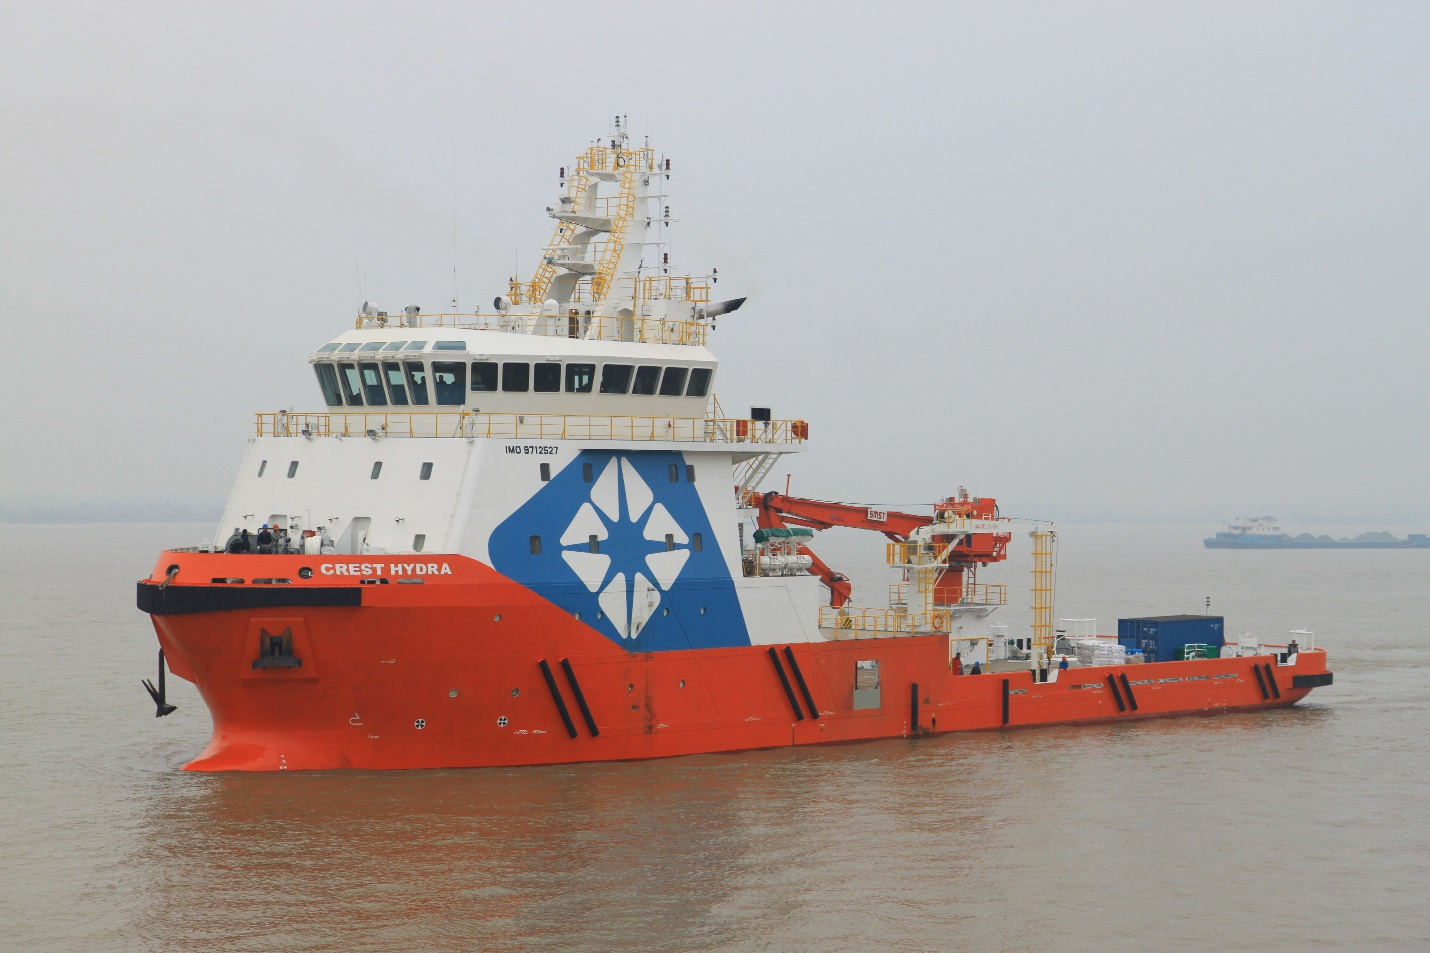 Crest Hydra ROV Support Vessel with 70 Meter Length